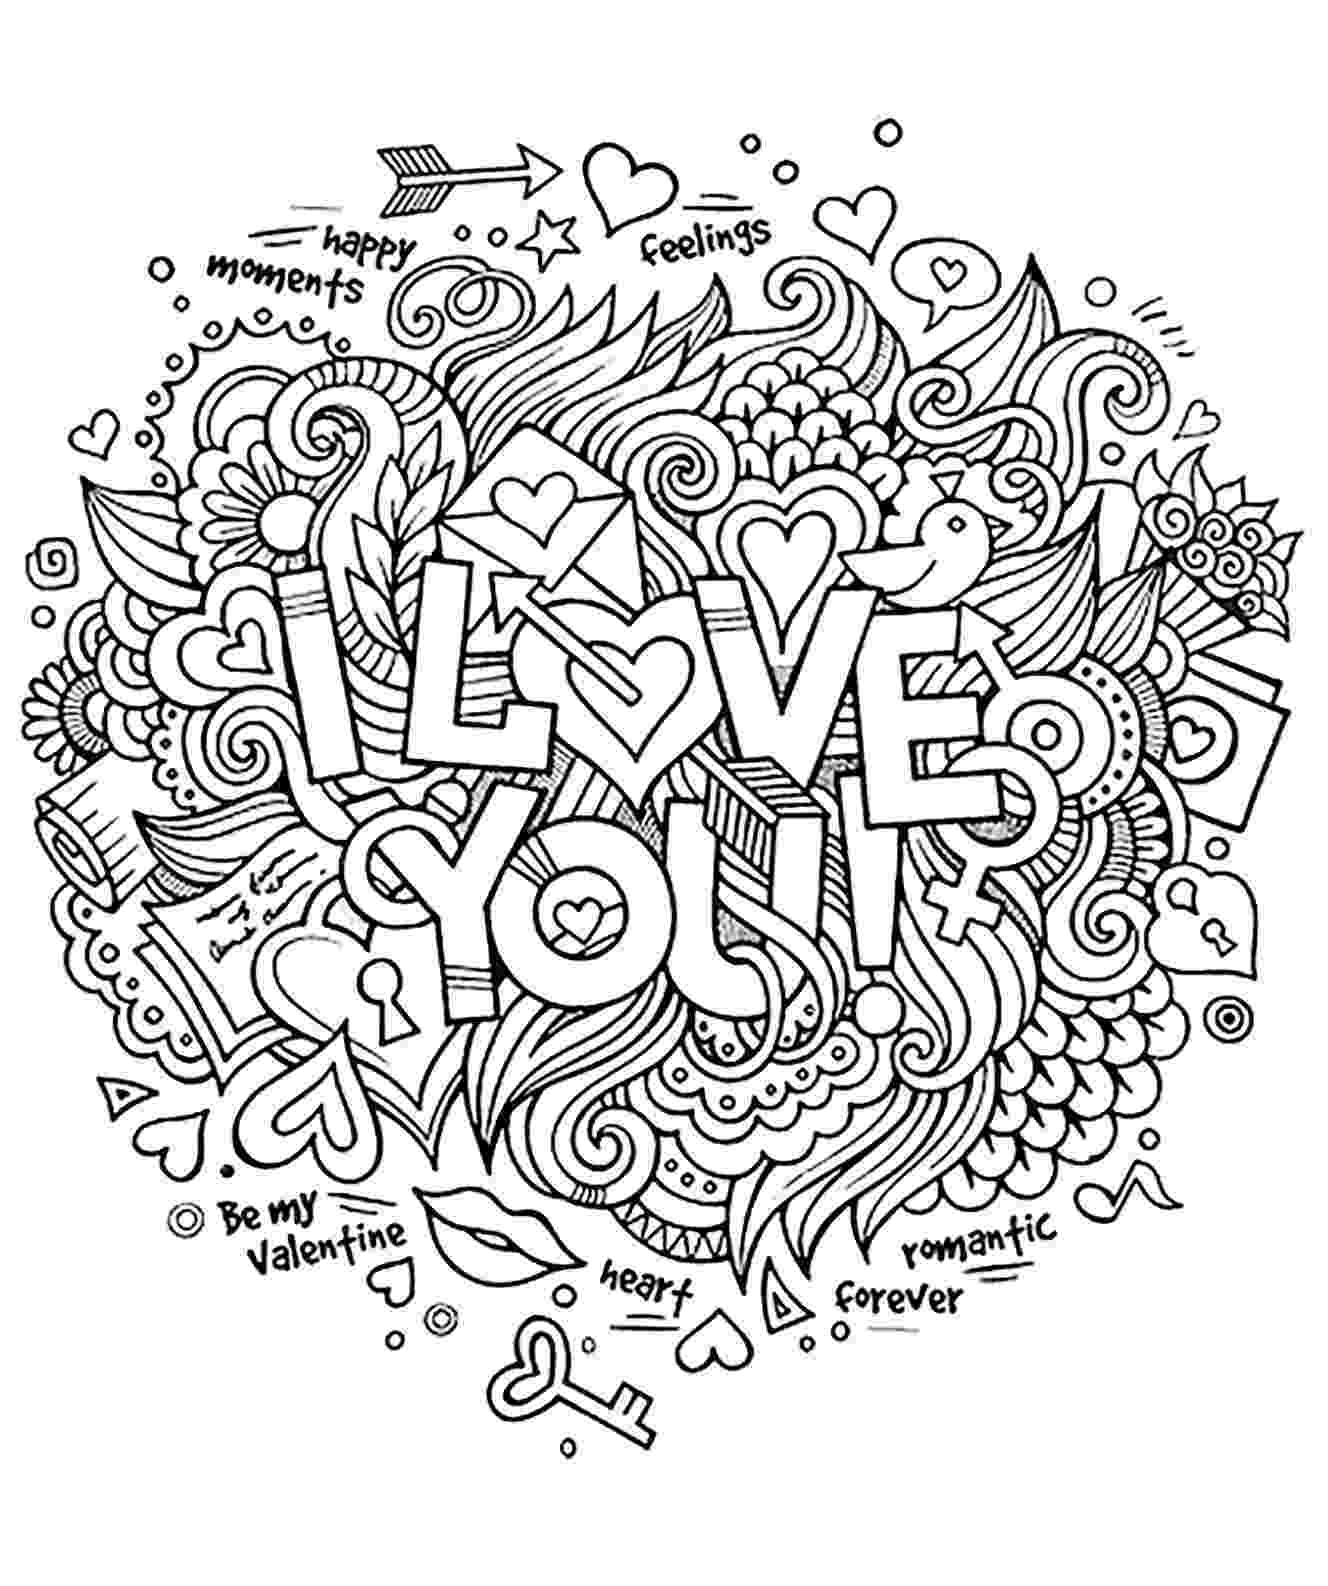 printable coloring pages for adults love i love you coloring pages for adults explore colouring printable pages adults for love coloring